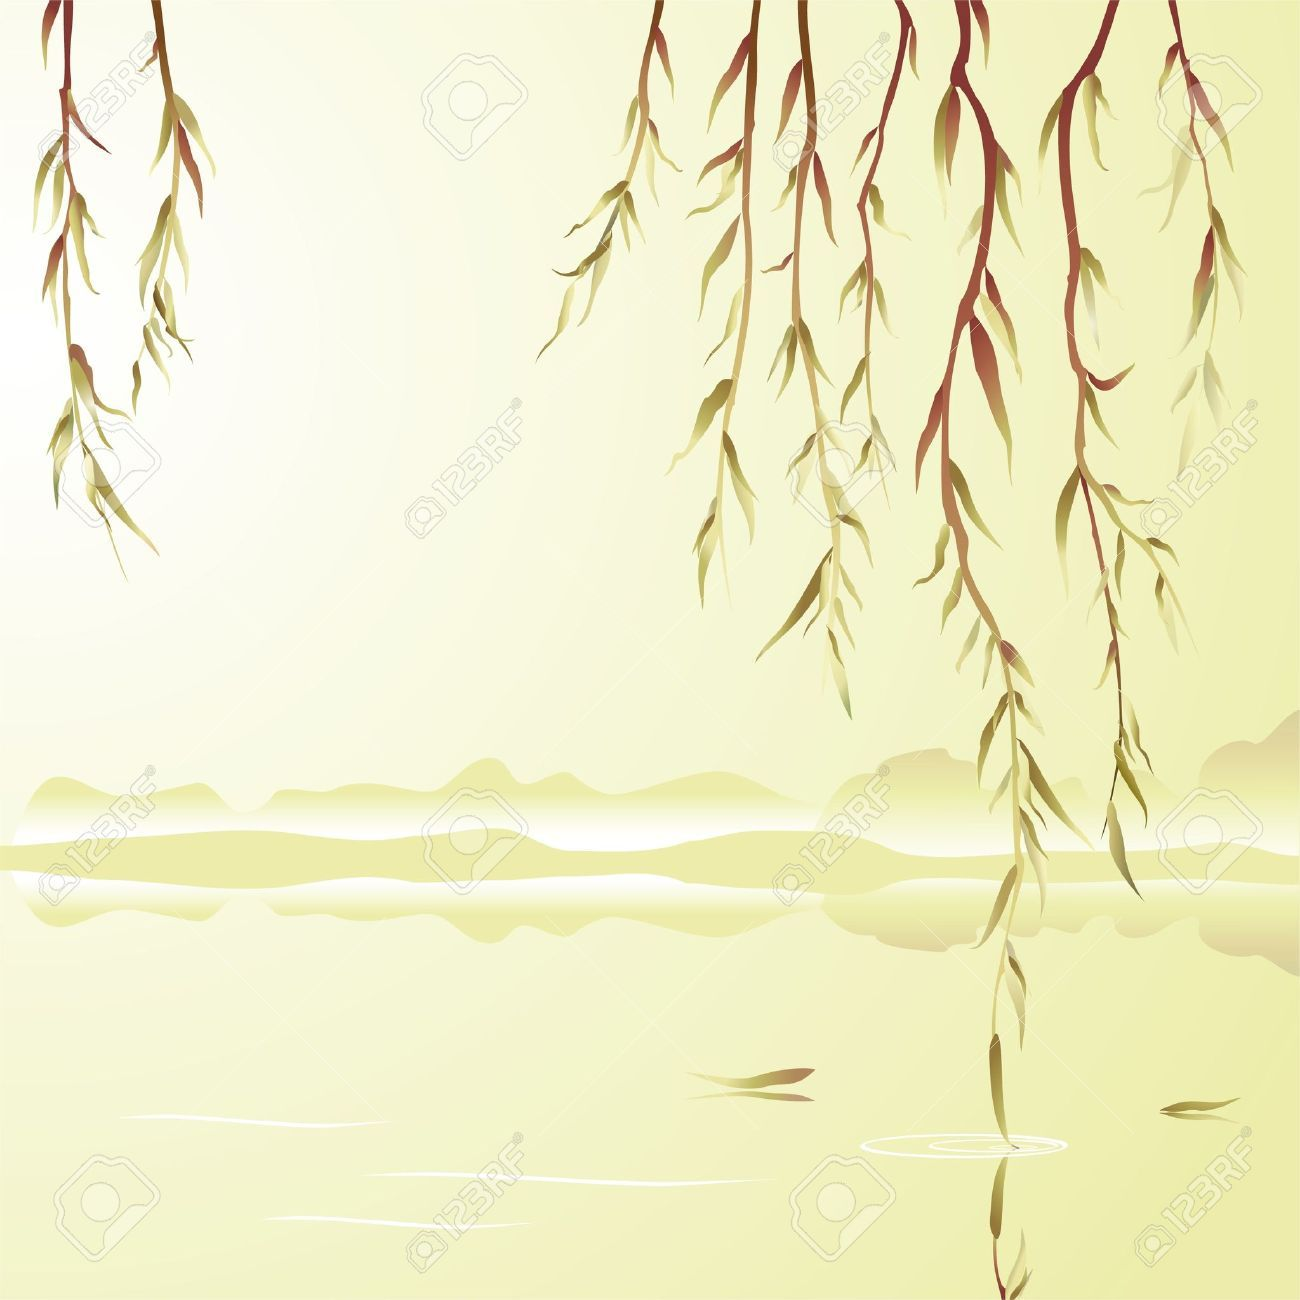 weeping willow tree clipart | Willow | Pinterest | Tree clipart ...